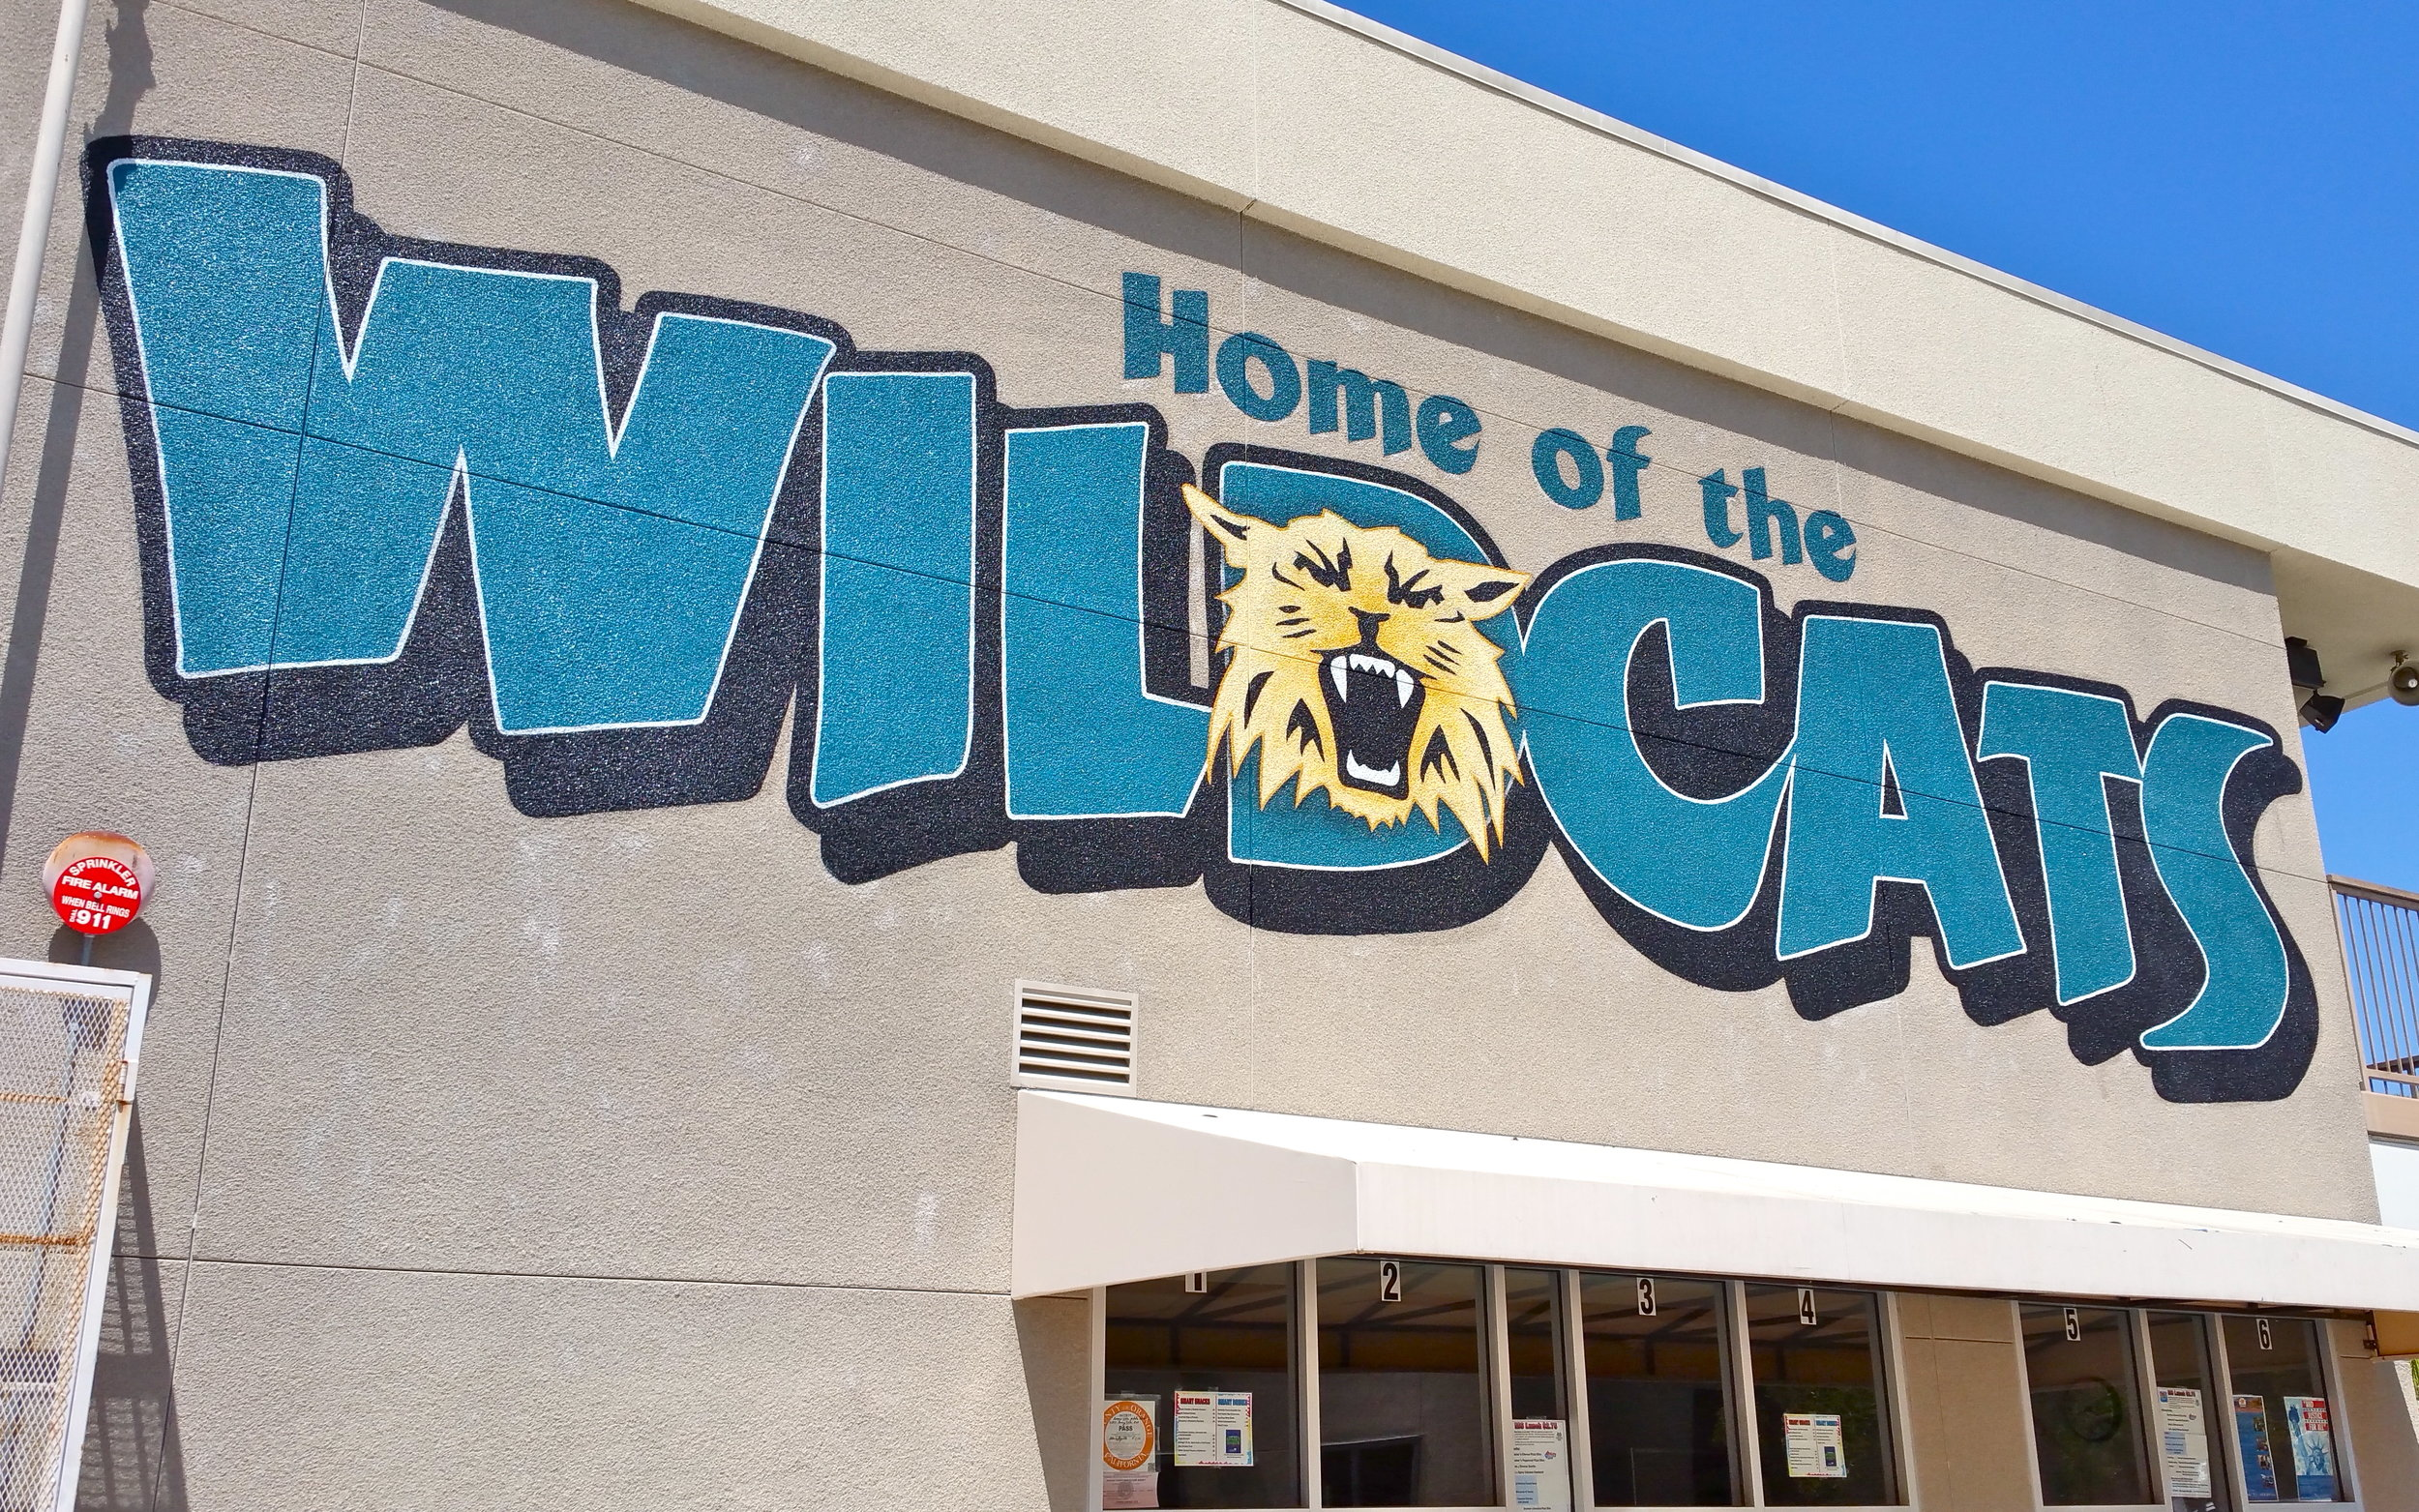 Wildcats school mural hand painted on stucco surface